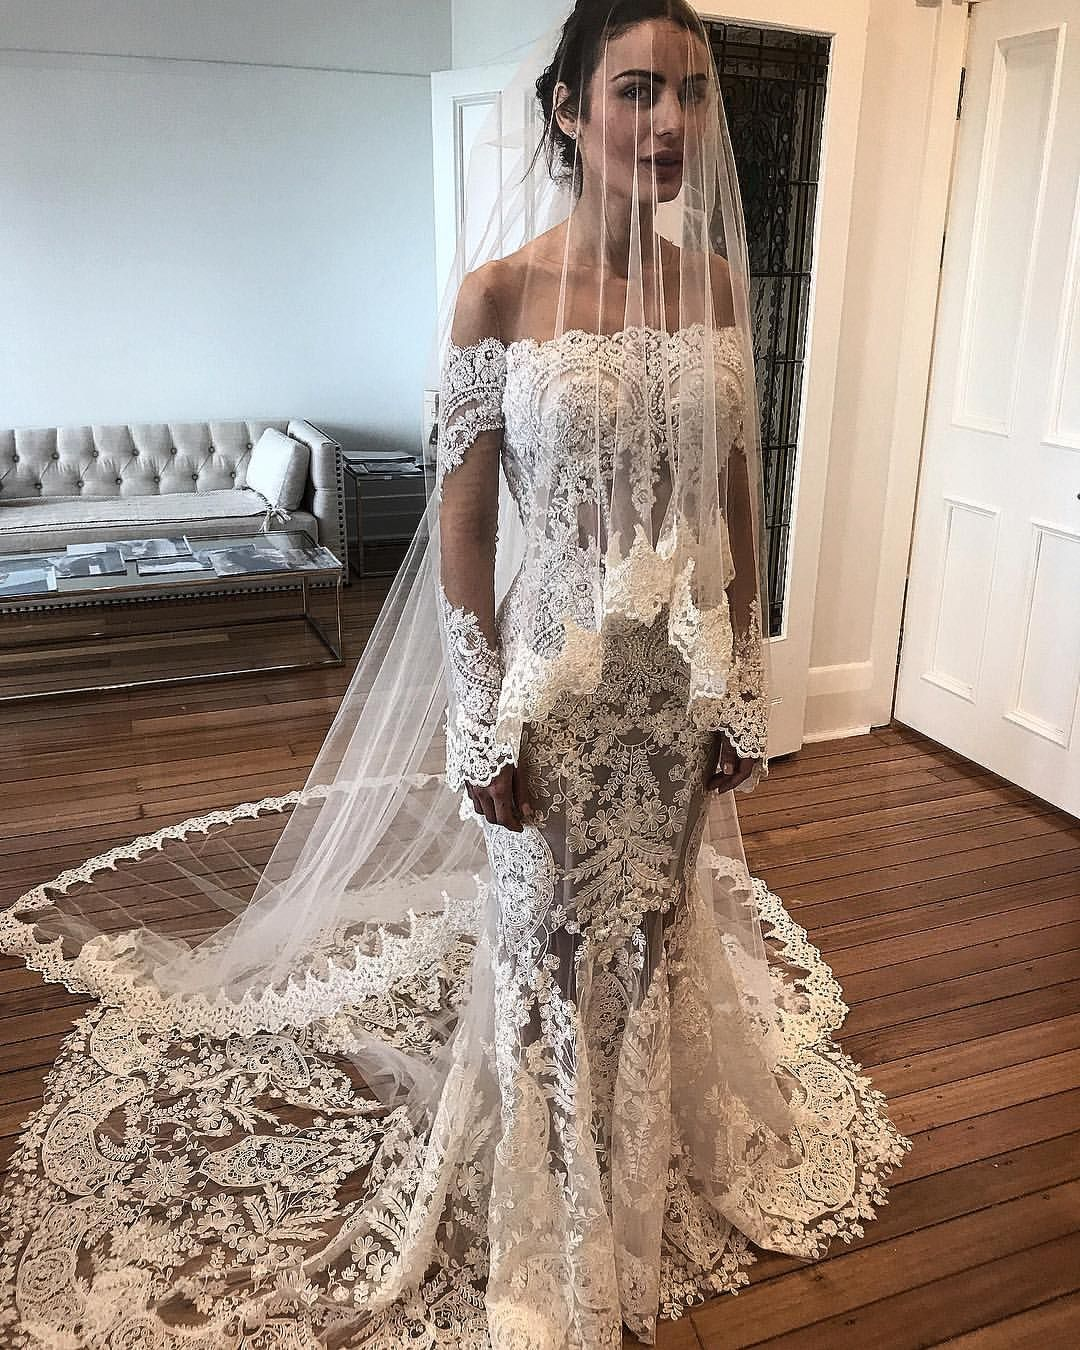 Pin By Keely Dougherty On Cassie's Wedding Dress